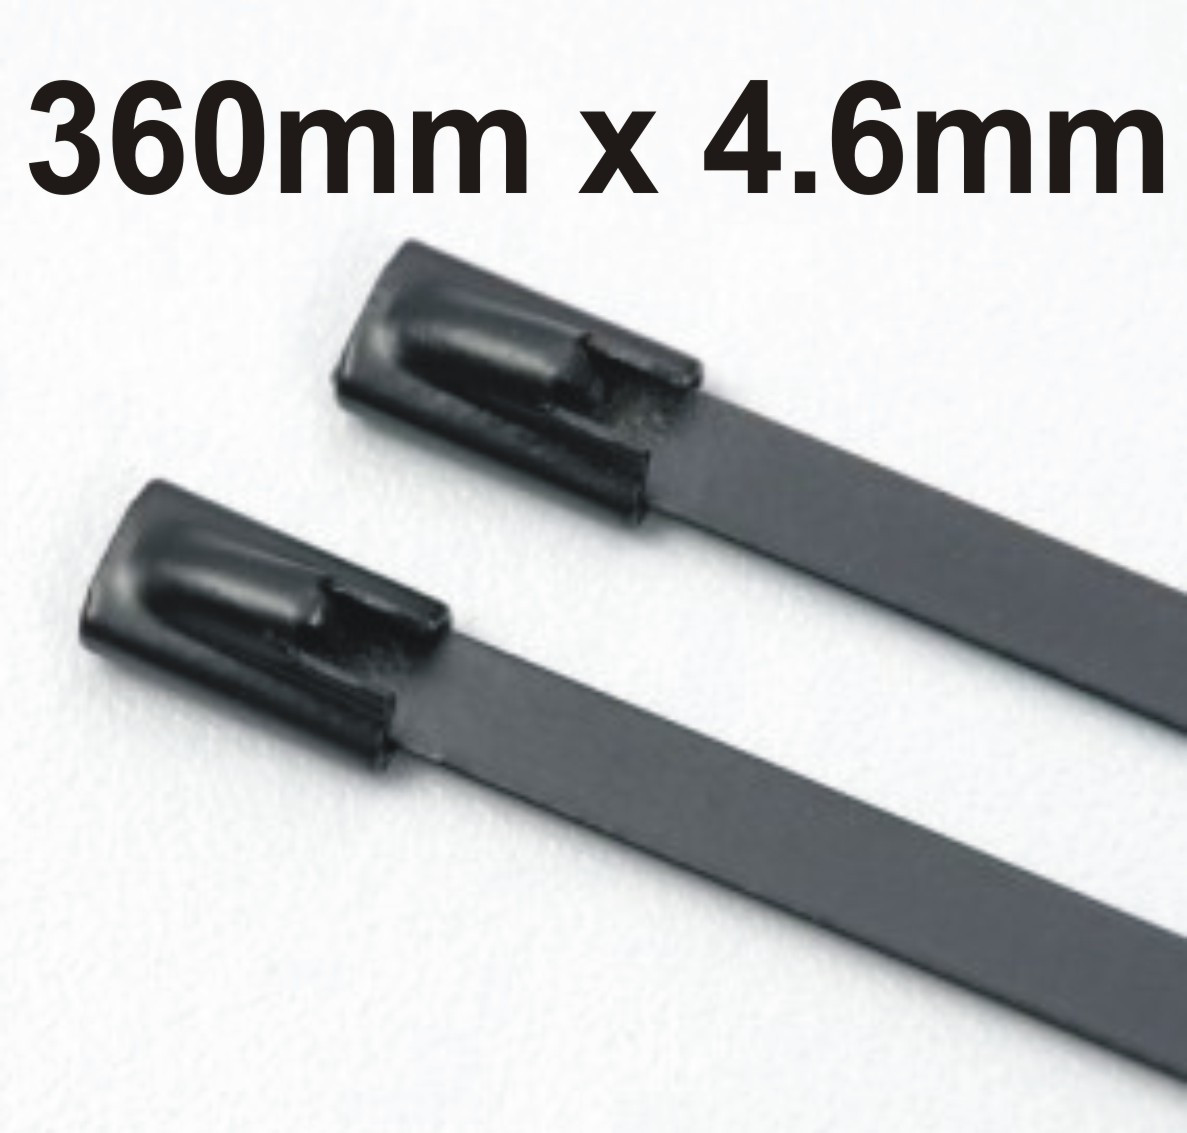 Stainless Steel Cable Ties Coated  360mm x 4.6mm